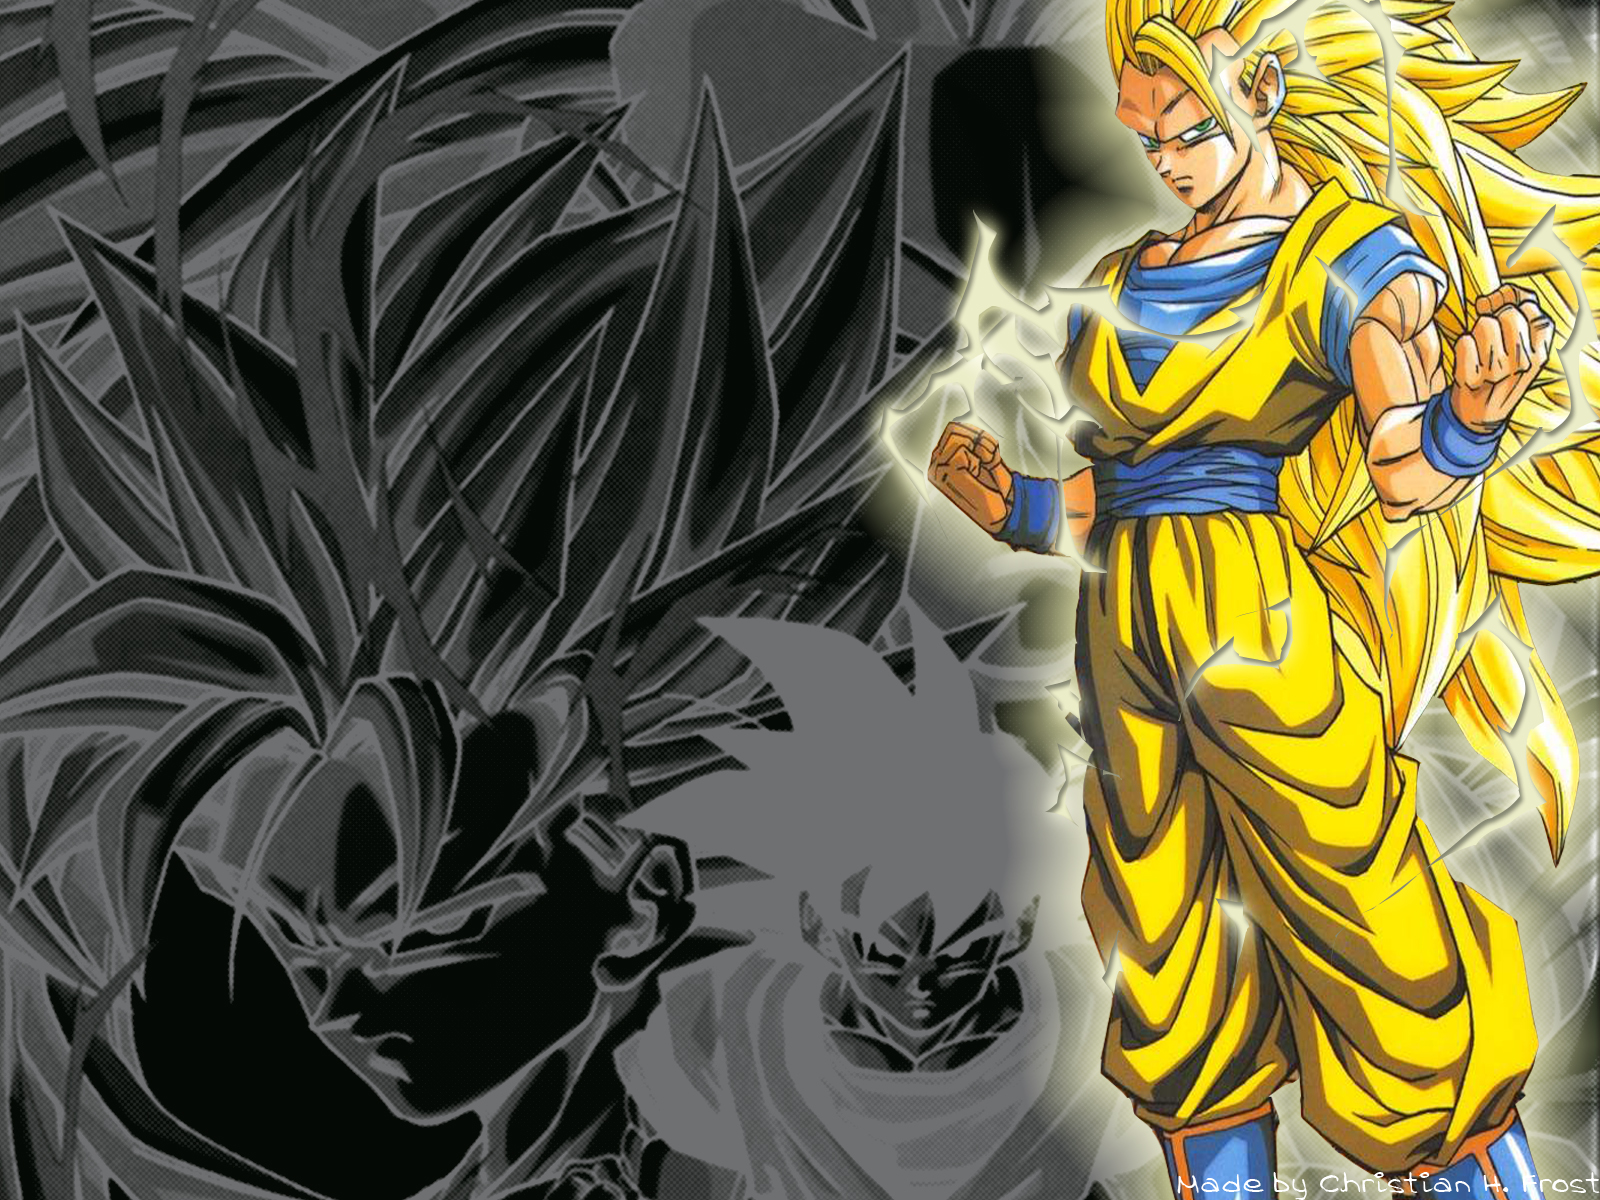 45 4k Dragon Ball Z Wallpaper On Wallpapersafari